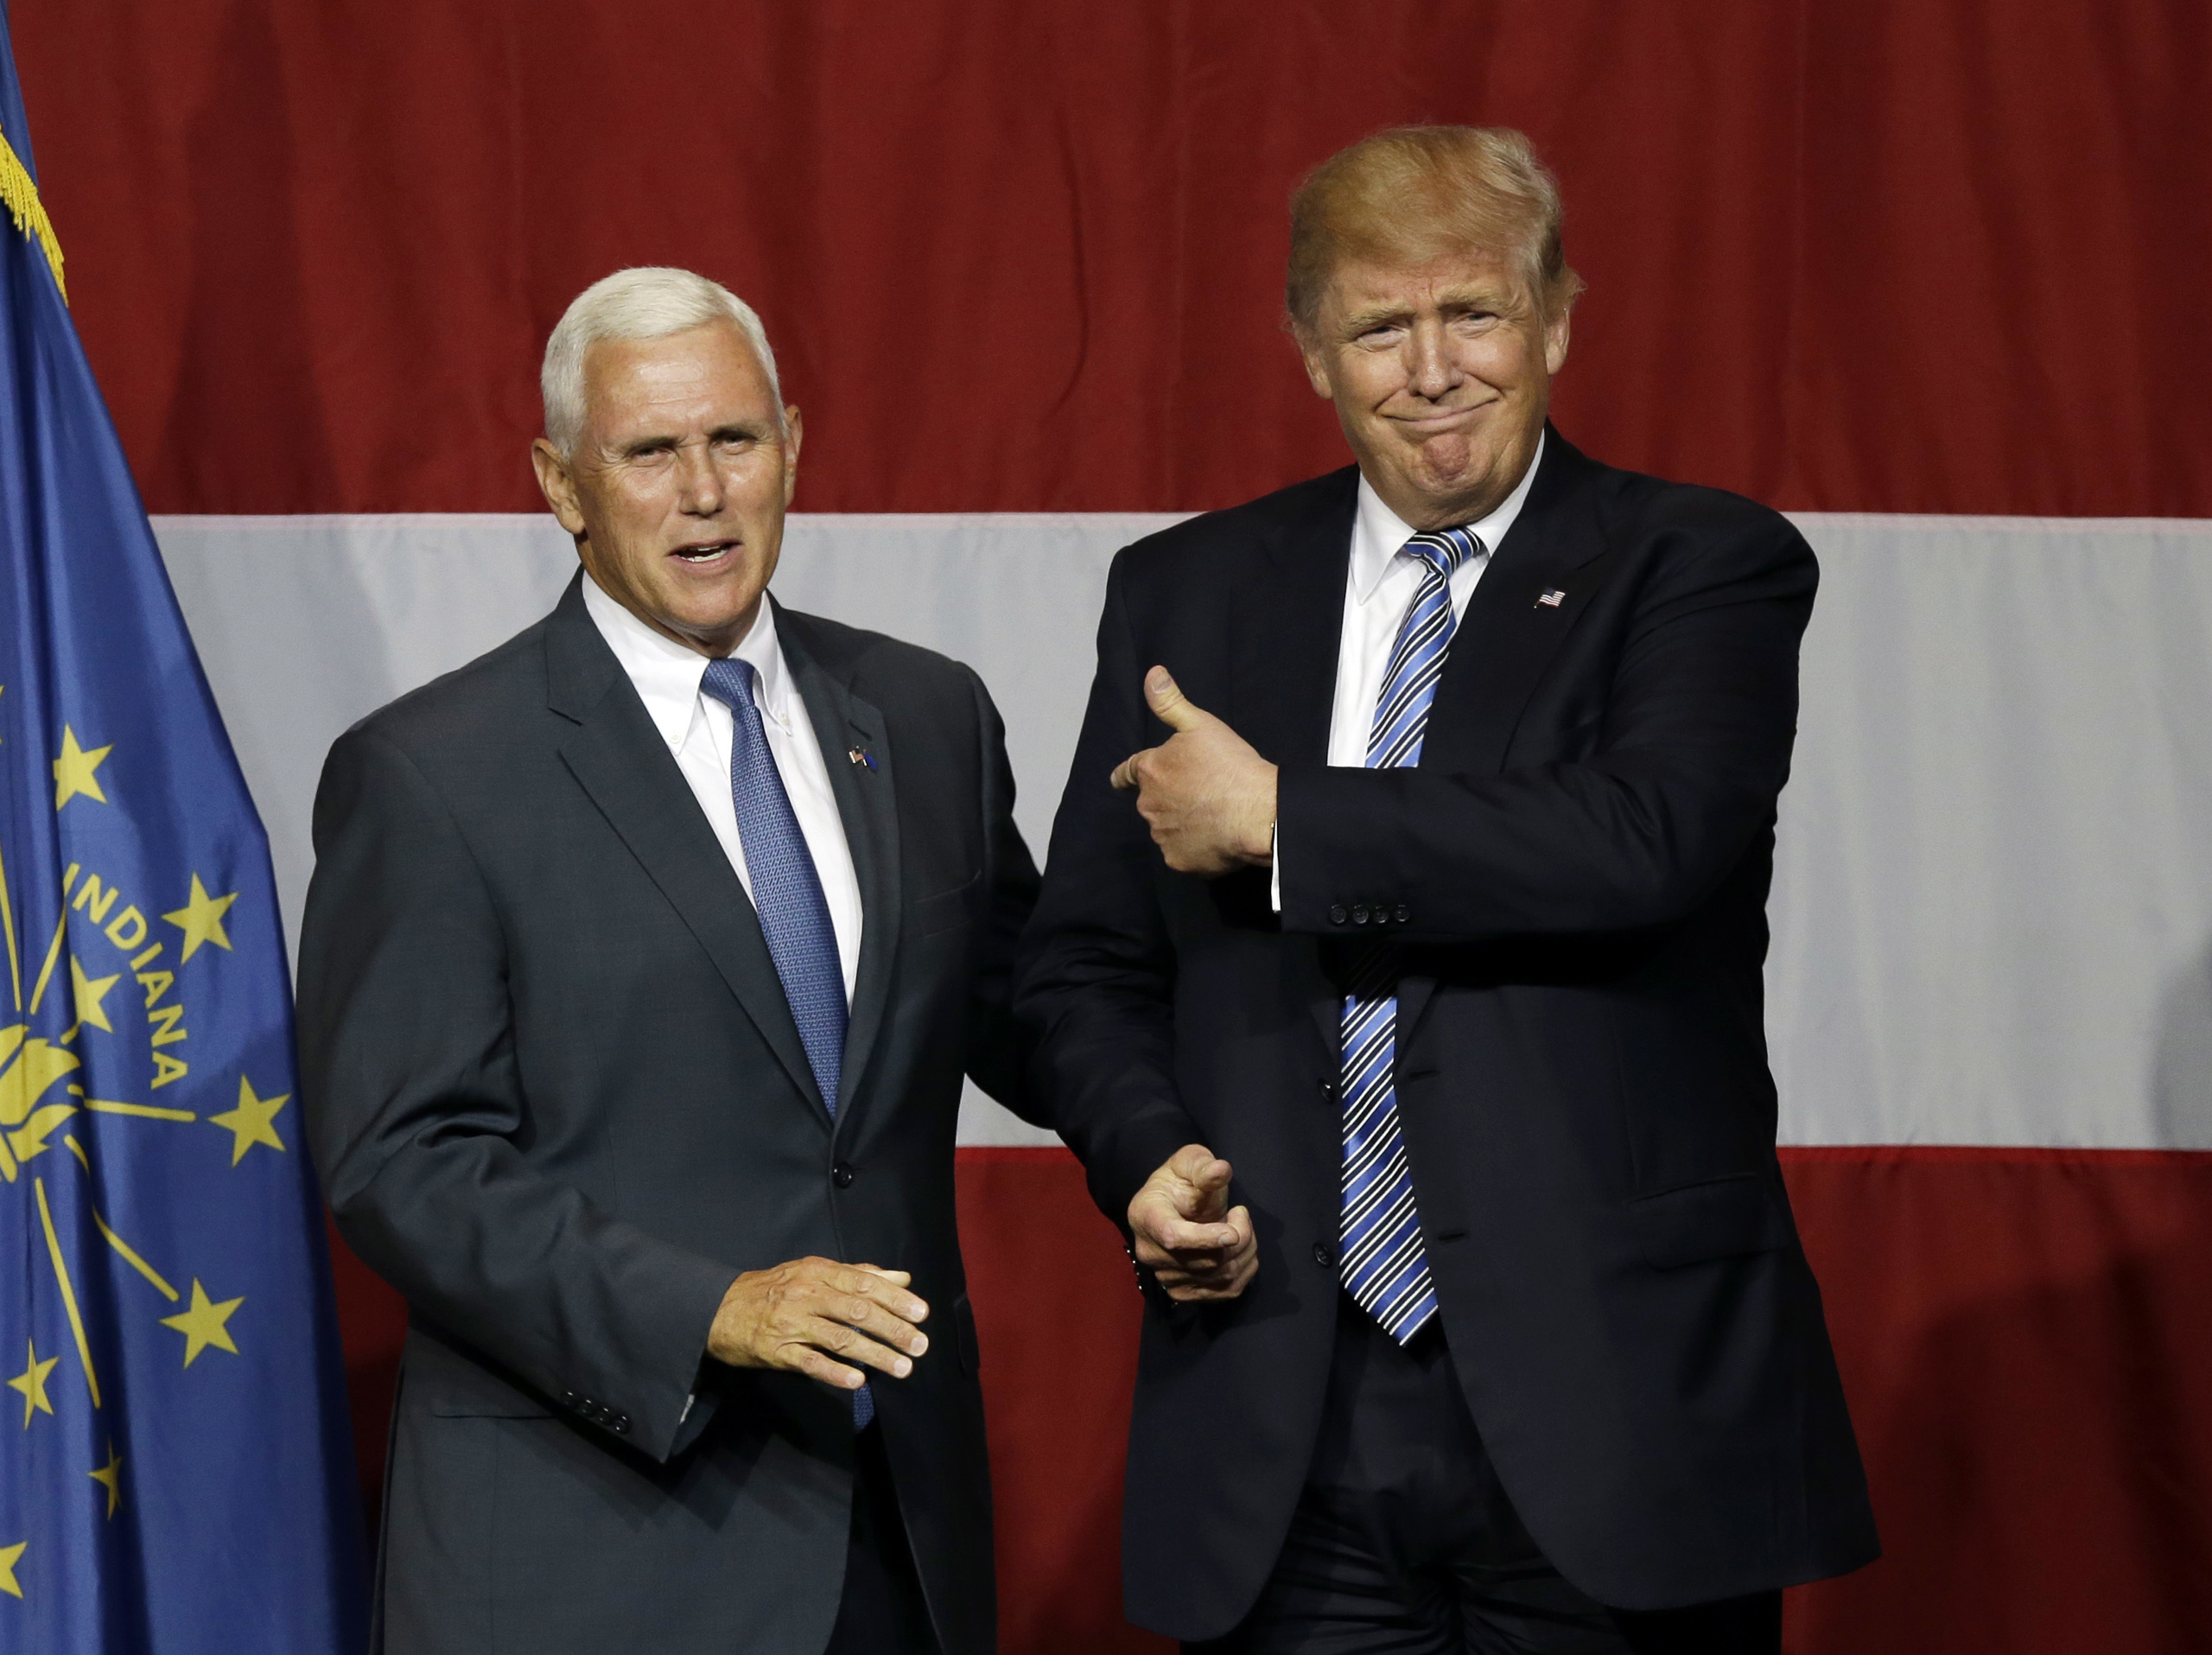 Indiana Gov. Mike Pence joins Republican presidential candidate Donald Trump at a rally in Westfield, Ind. on July 12, 2016.